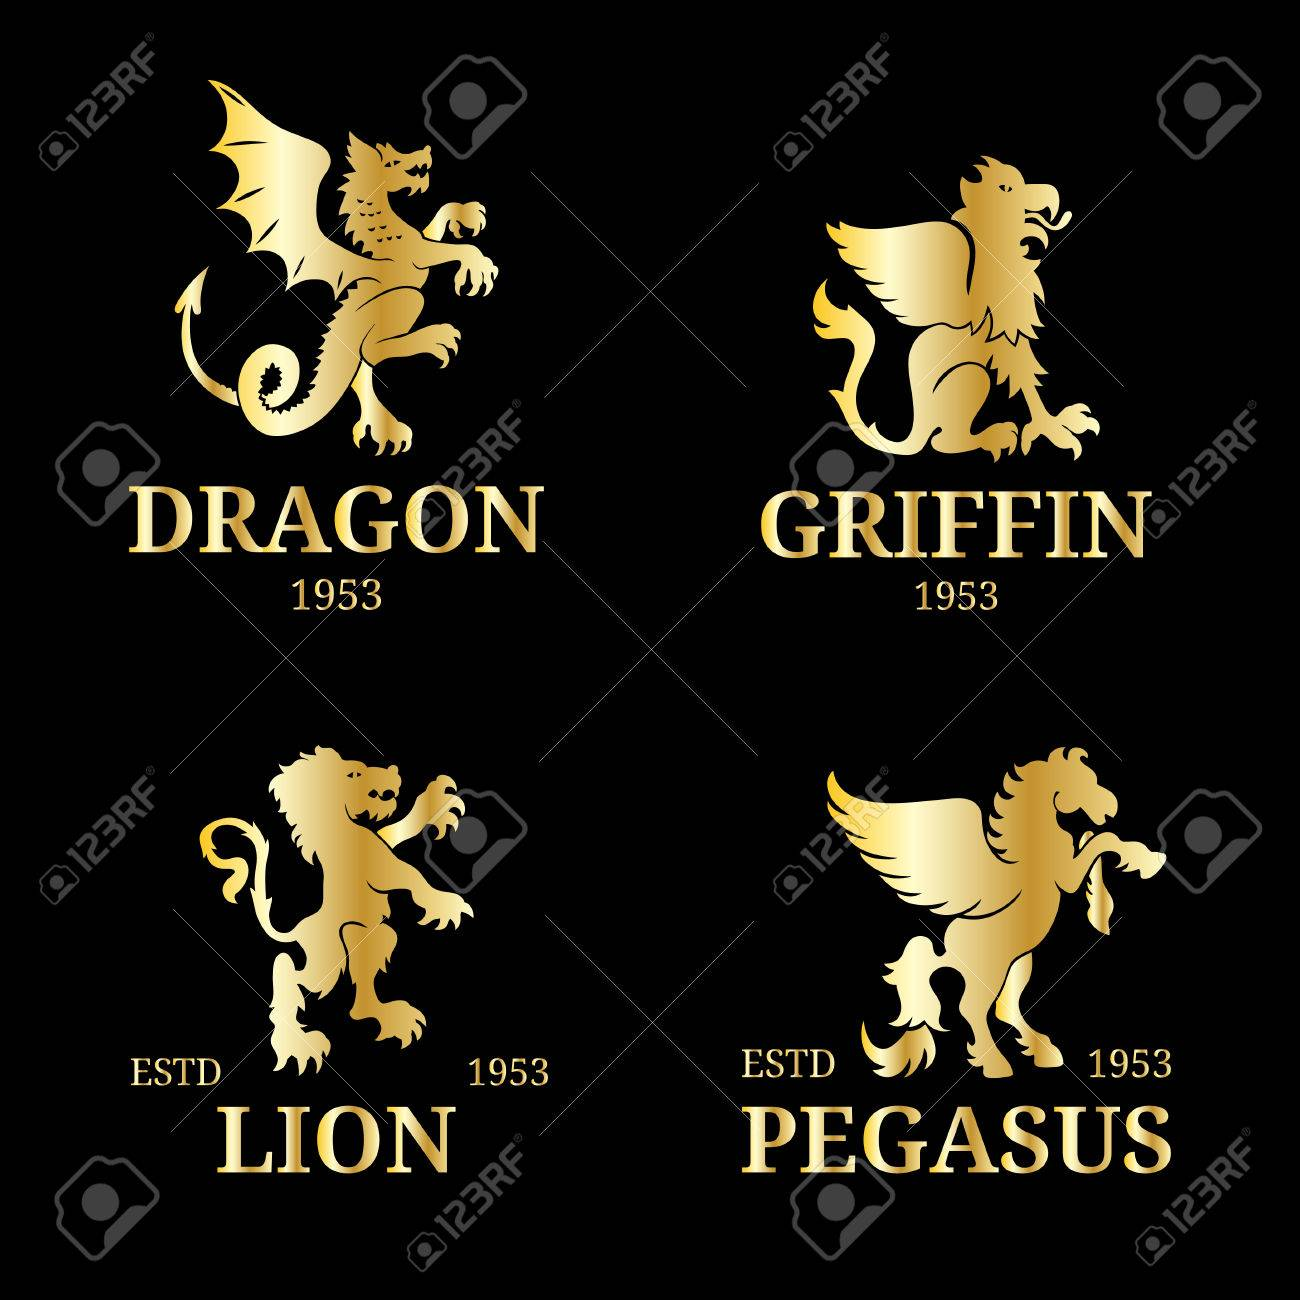 Luxury Pegasus Lion Etc Design Graceful Animals Silhouettes Illustration Used For Hotel Restaurant Boutique Jewellery Business Card